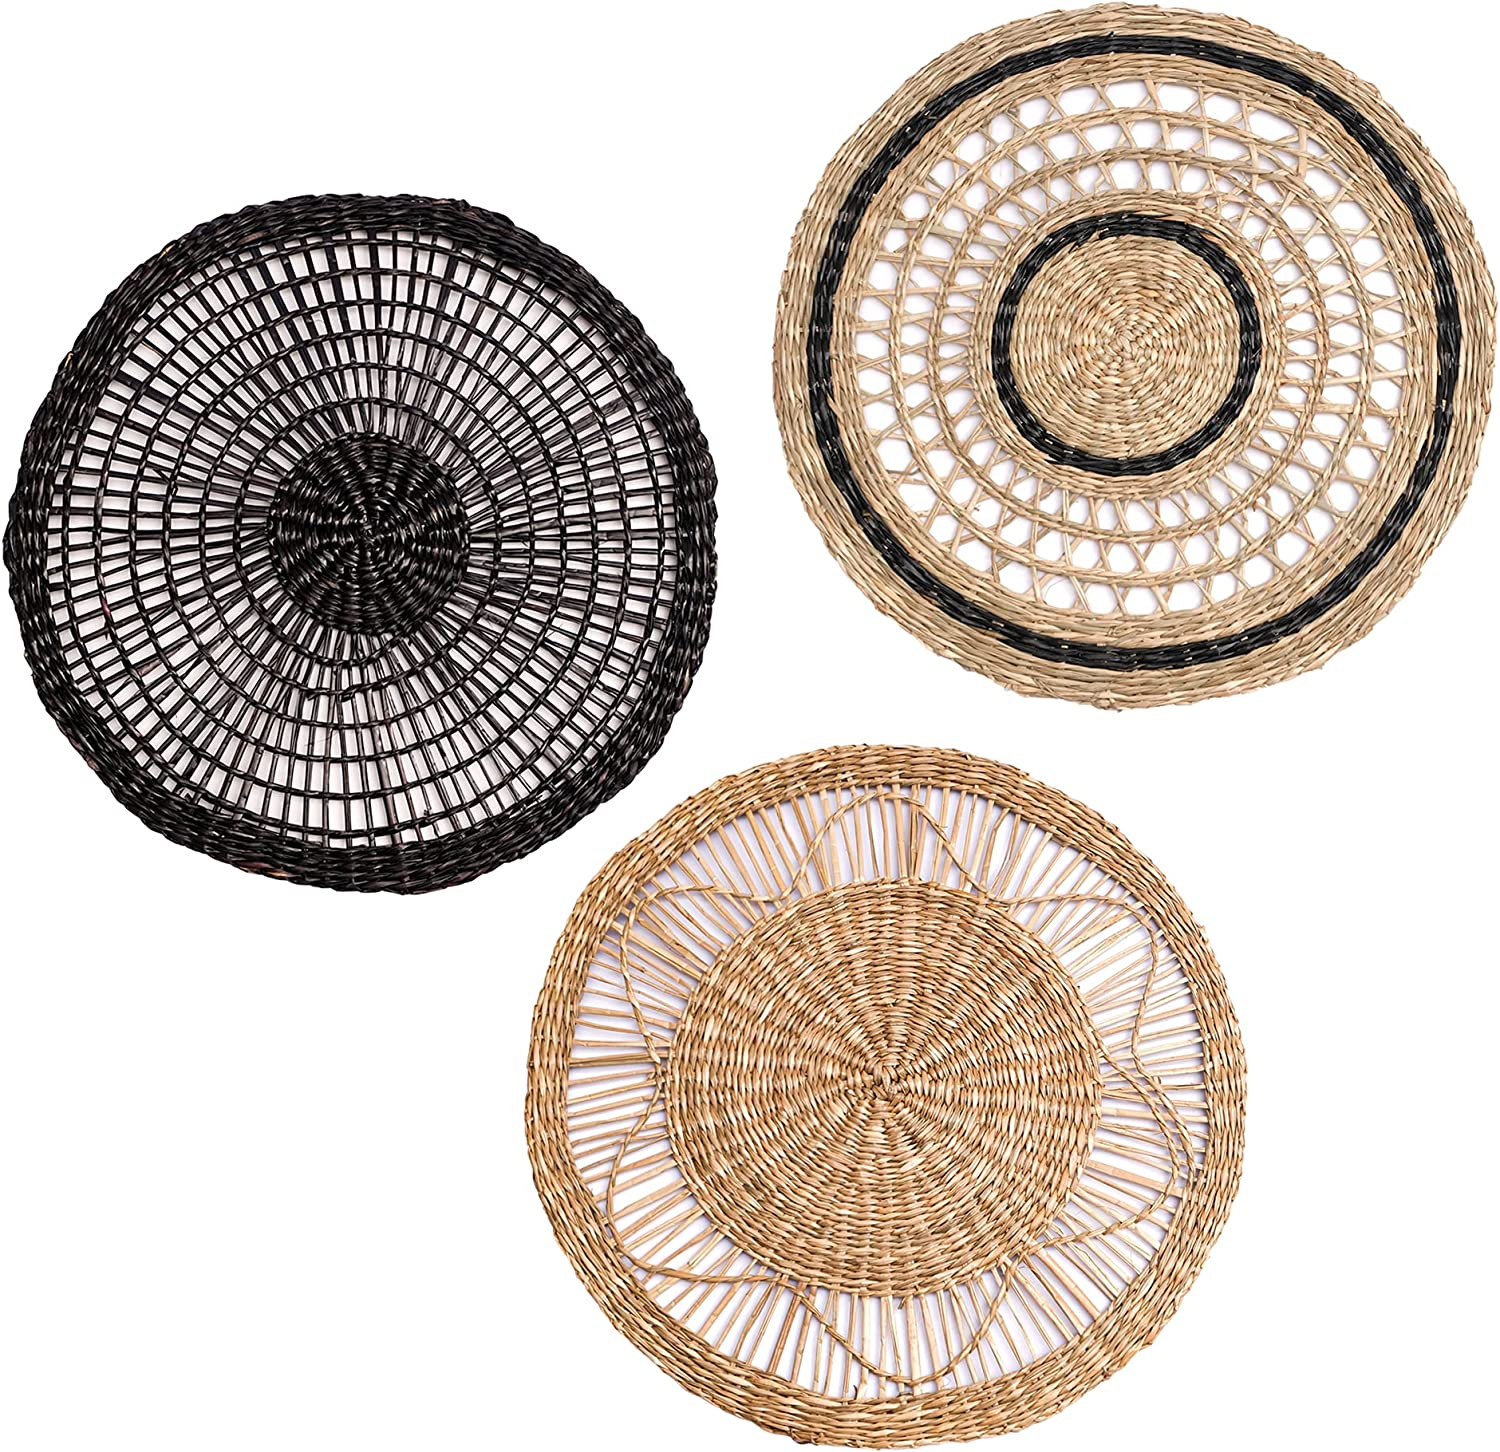 ChicnChill Flat Wall Baskets Decor Boho - Set 3 of Rustic Hanging Woven Wall Basket with African Designs, Unique Boho Wall Decor from Natural Seagrass